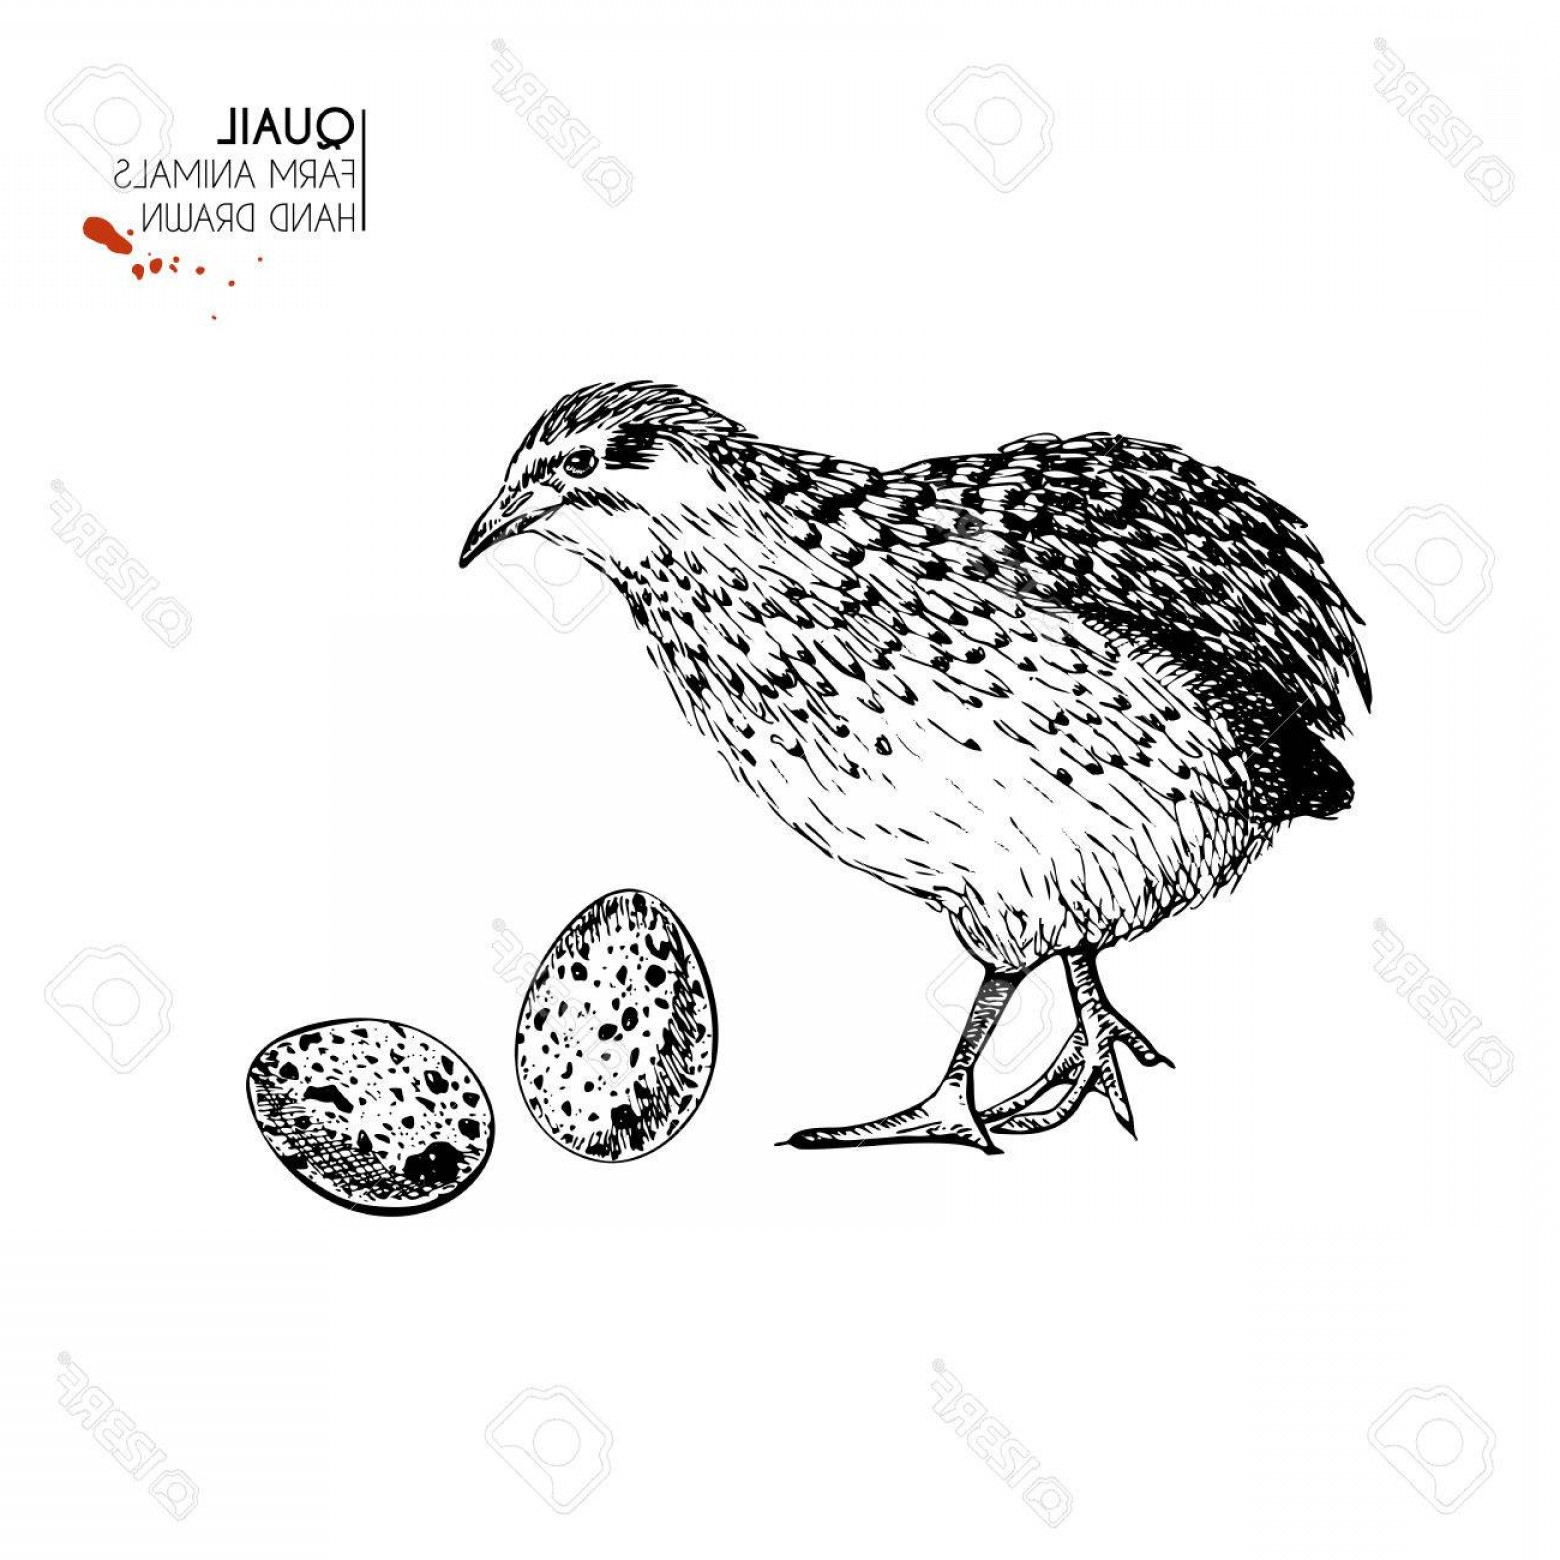 Quail Vector Art: Photostock Vector Vector Hand Drawn Set Of Farm Animals Isolated Quail Bird And Eggs Engraved Art Organic Sketched Far